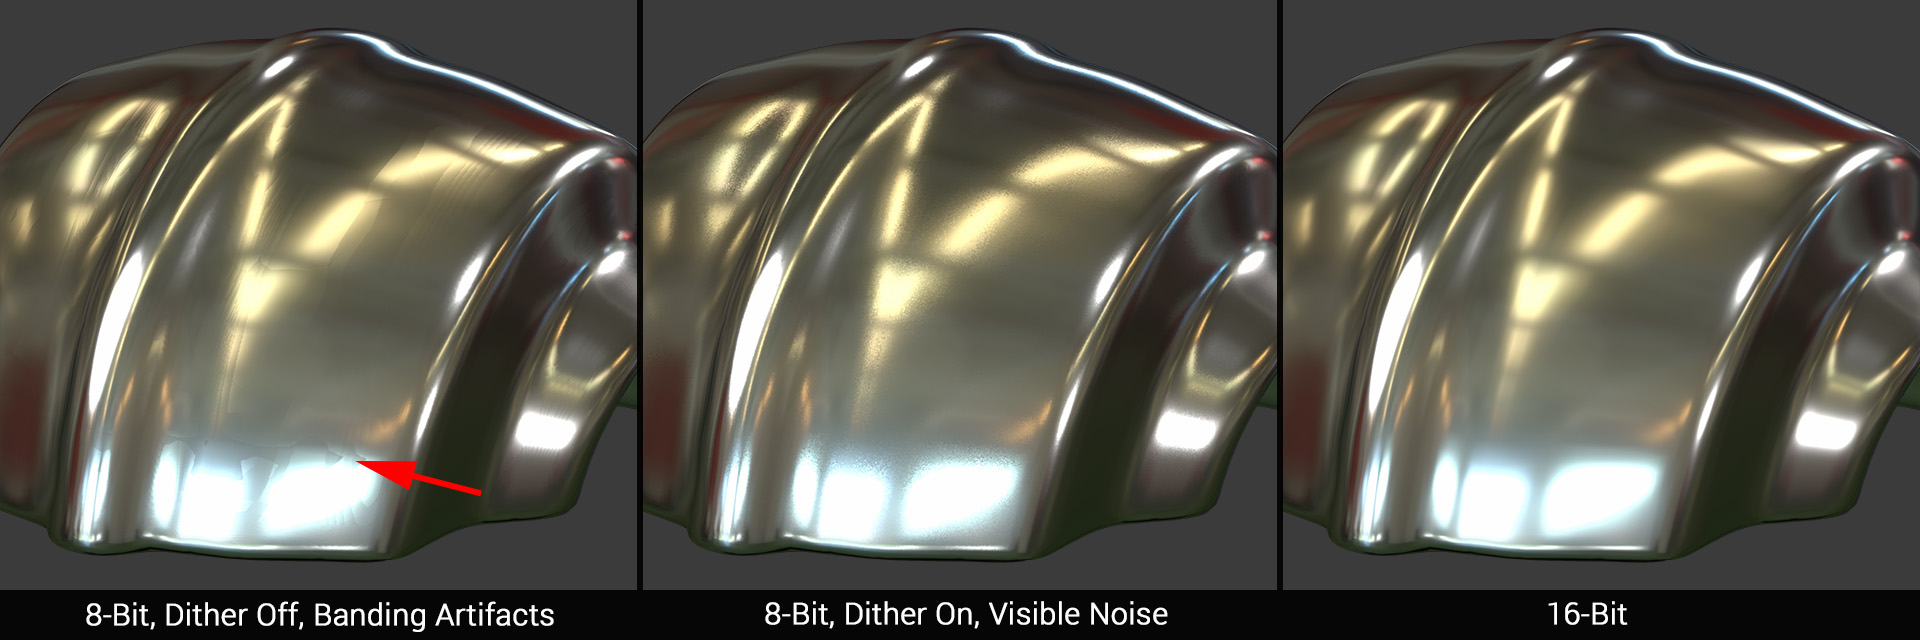 banding and dithering